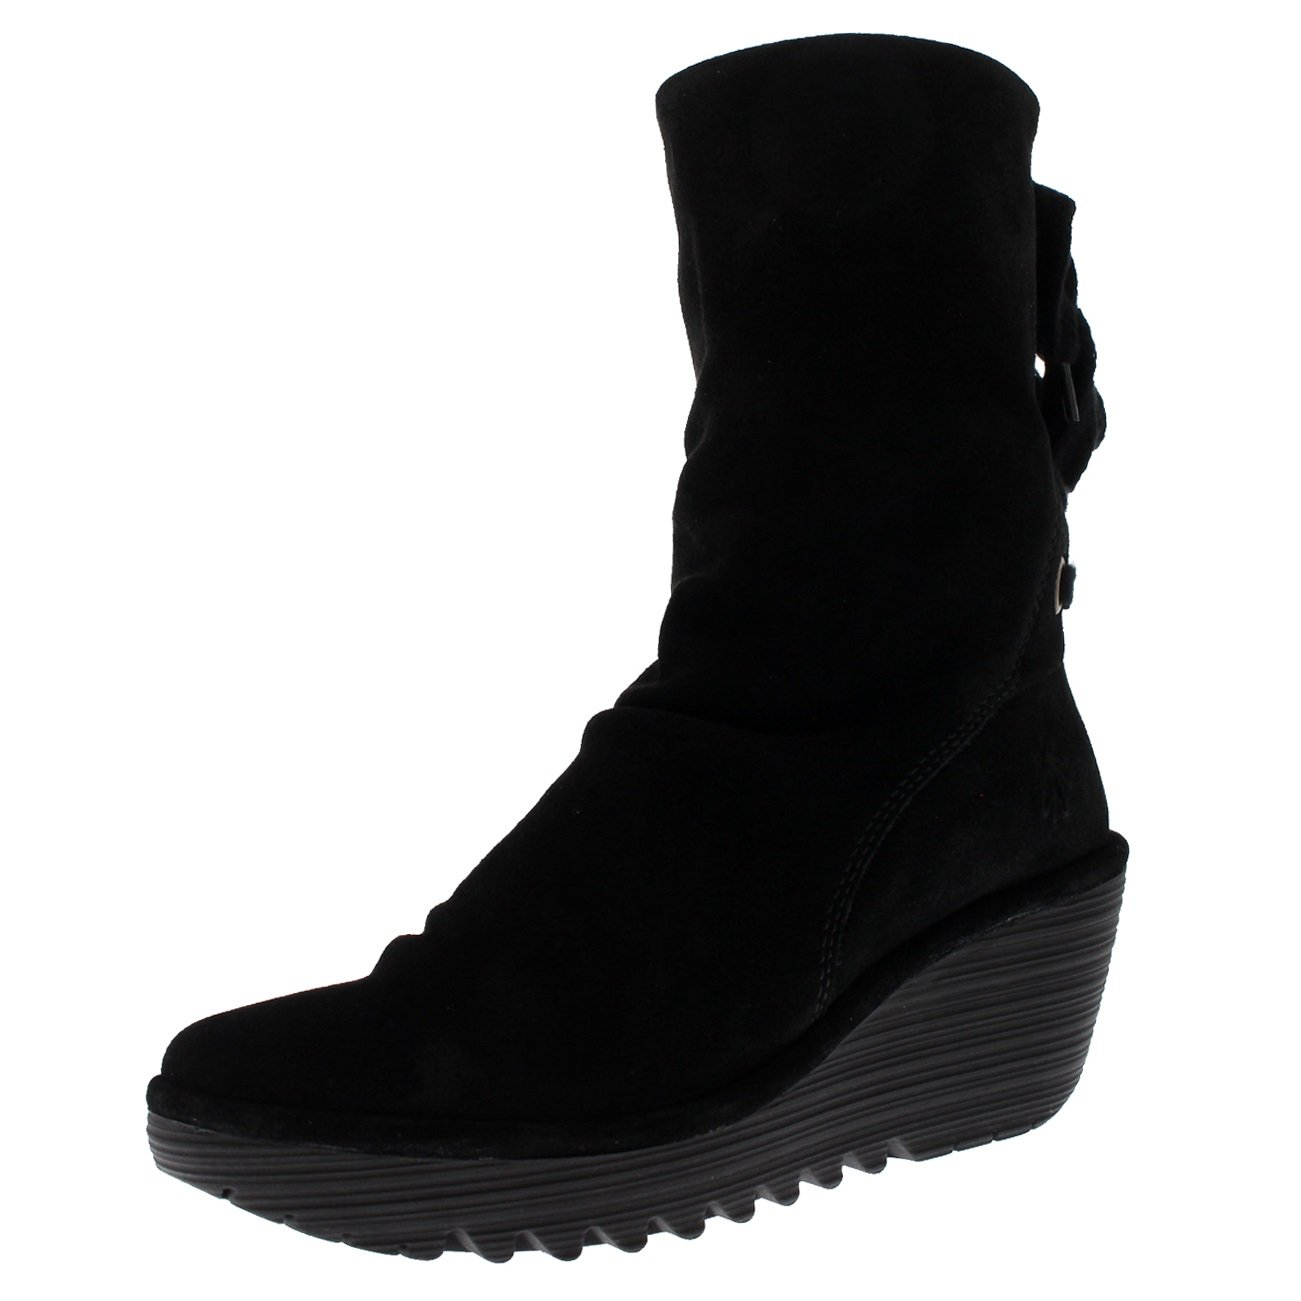 Womens Fly London Yada Wedge Heel Oil Suede Black Winter Mid Calf Boots - Black - 5 by FLY London (Image #1)